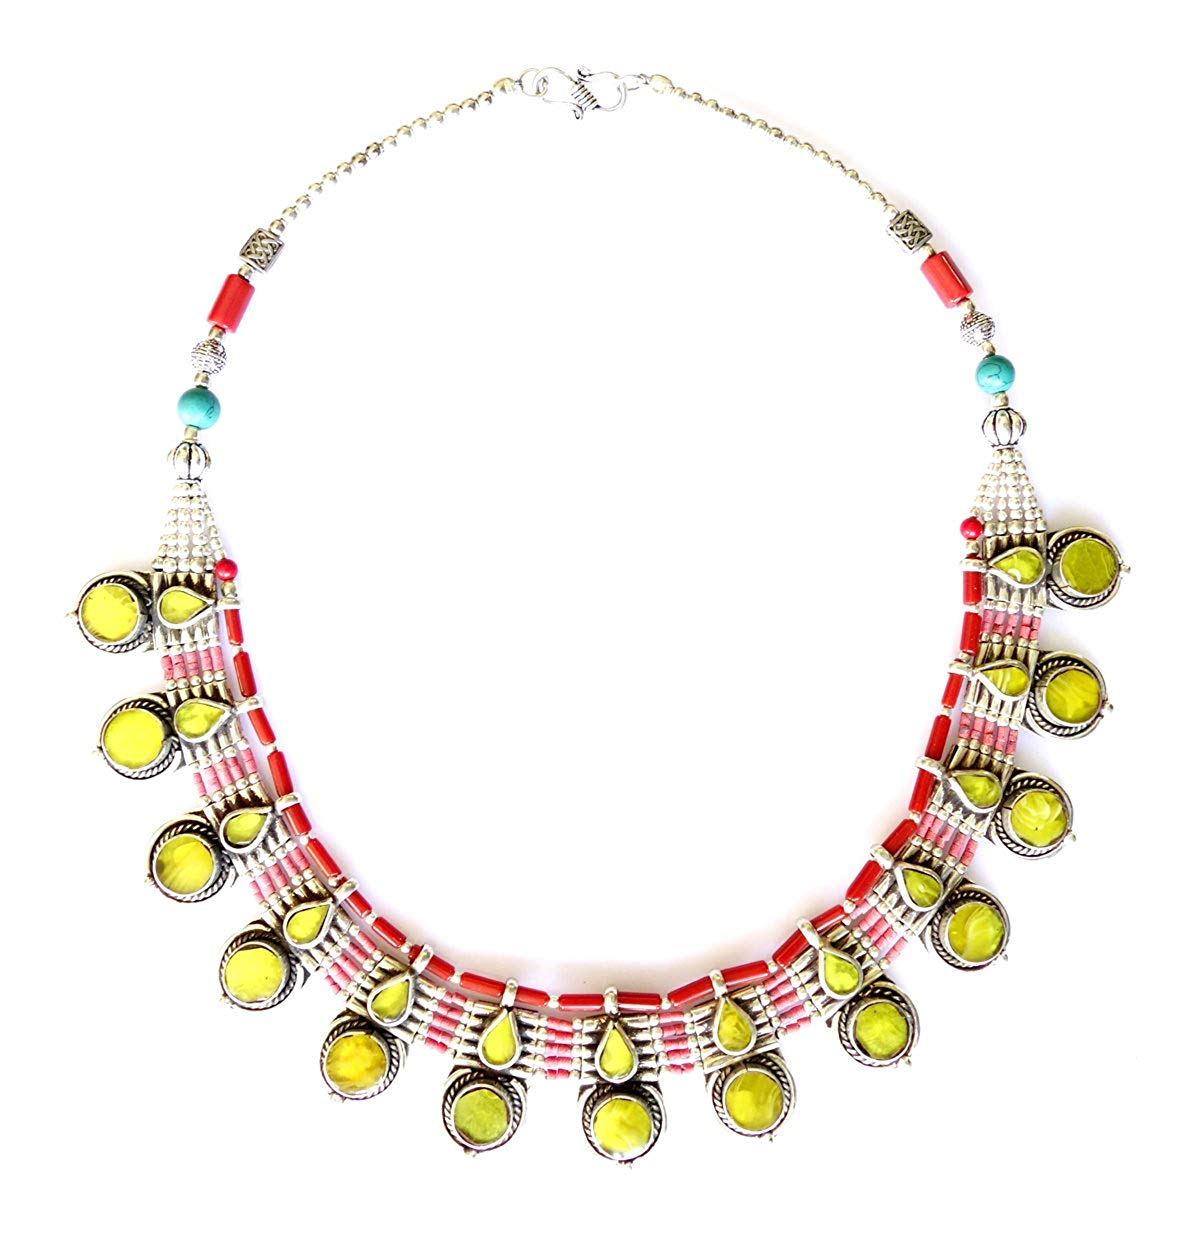 AUTHENTIC HANDMADE JEWELRY TIBETAN COLLAR NECKLACE FOR WOMEN CORAL TURQUOISE & AMBER GEMSTONE TRIBAL VINTAGE UNIQUE FASHION NECKLACE